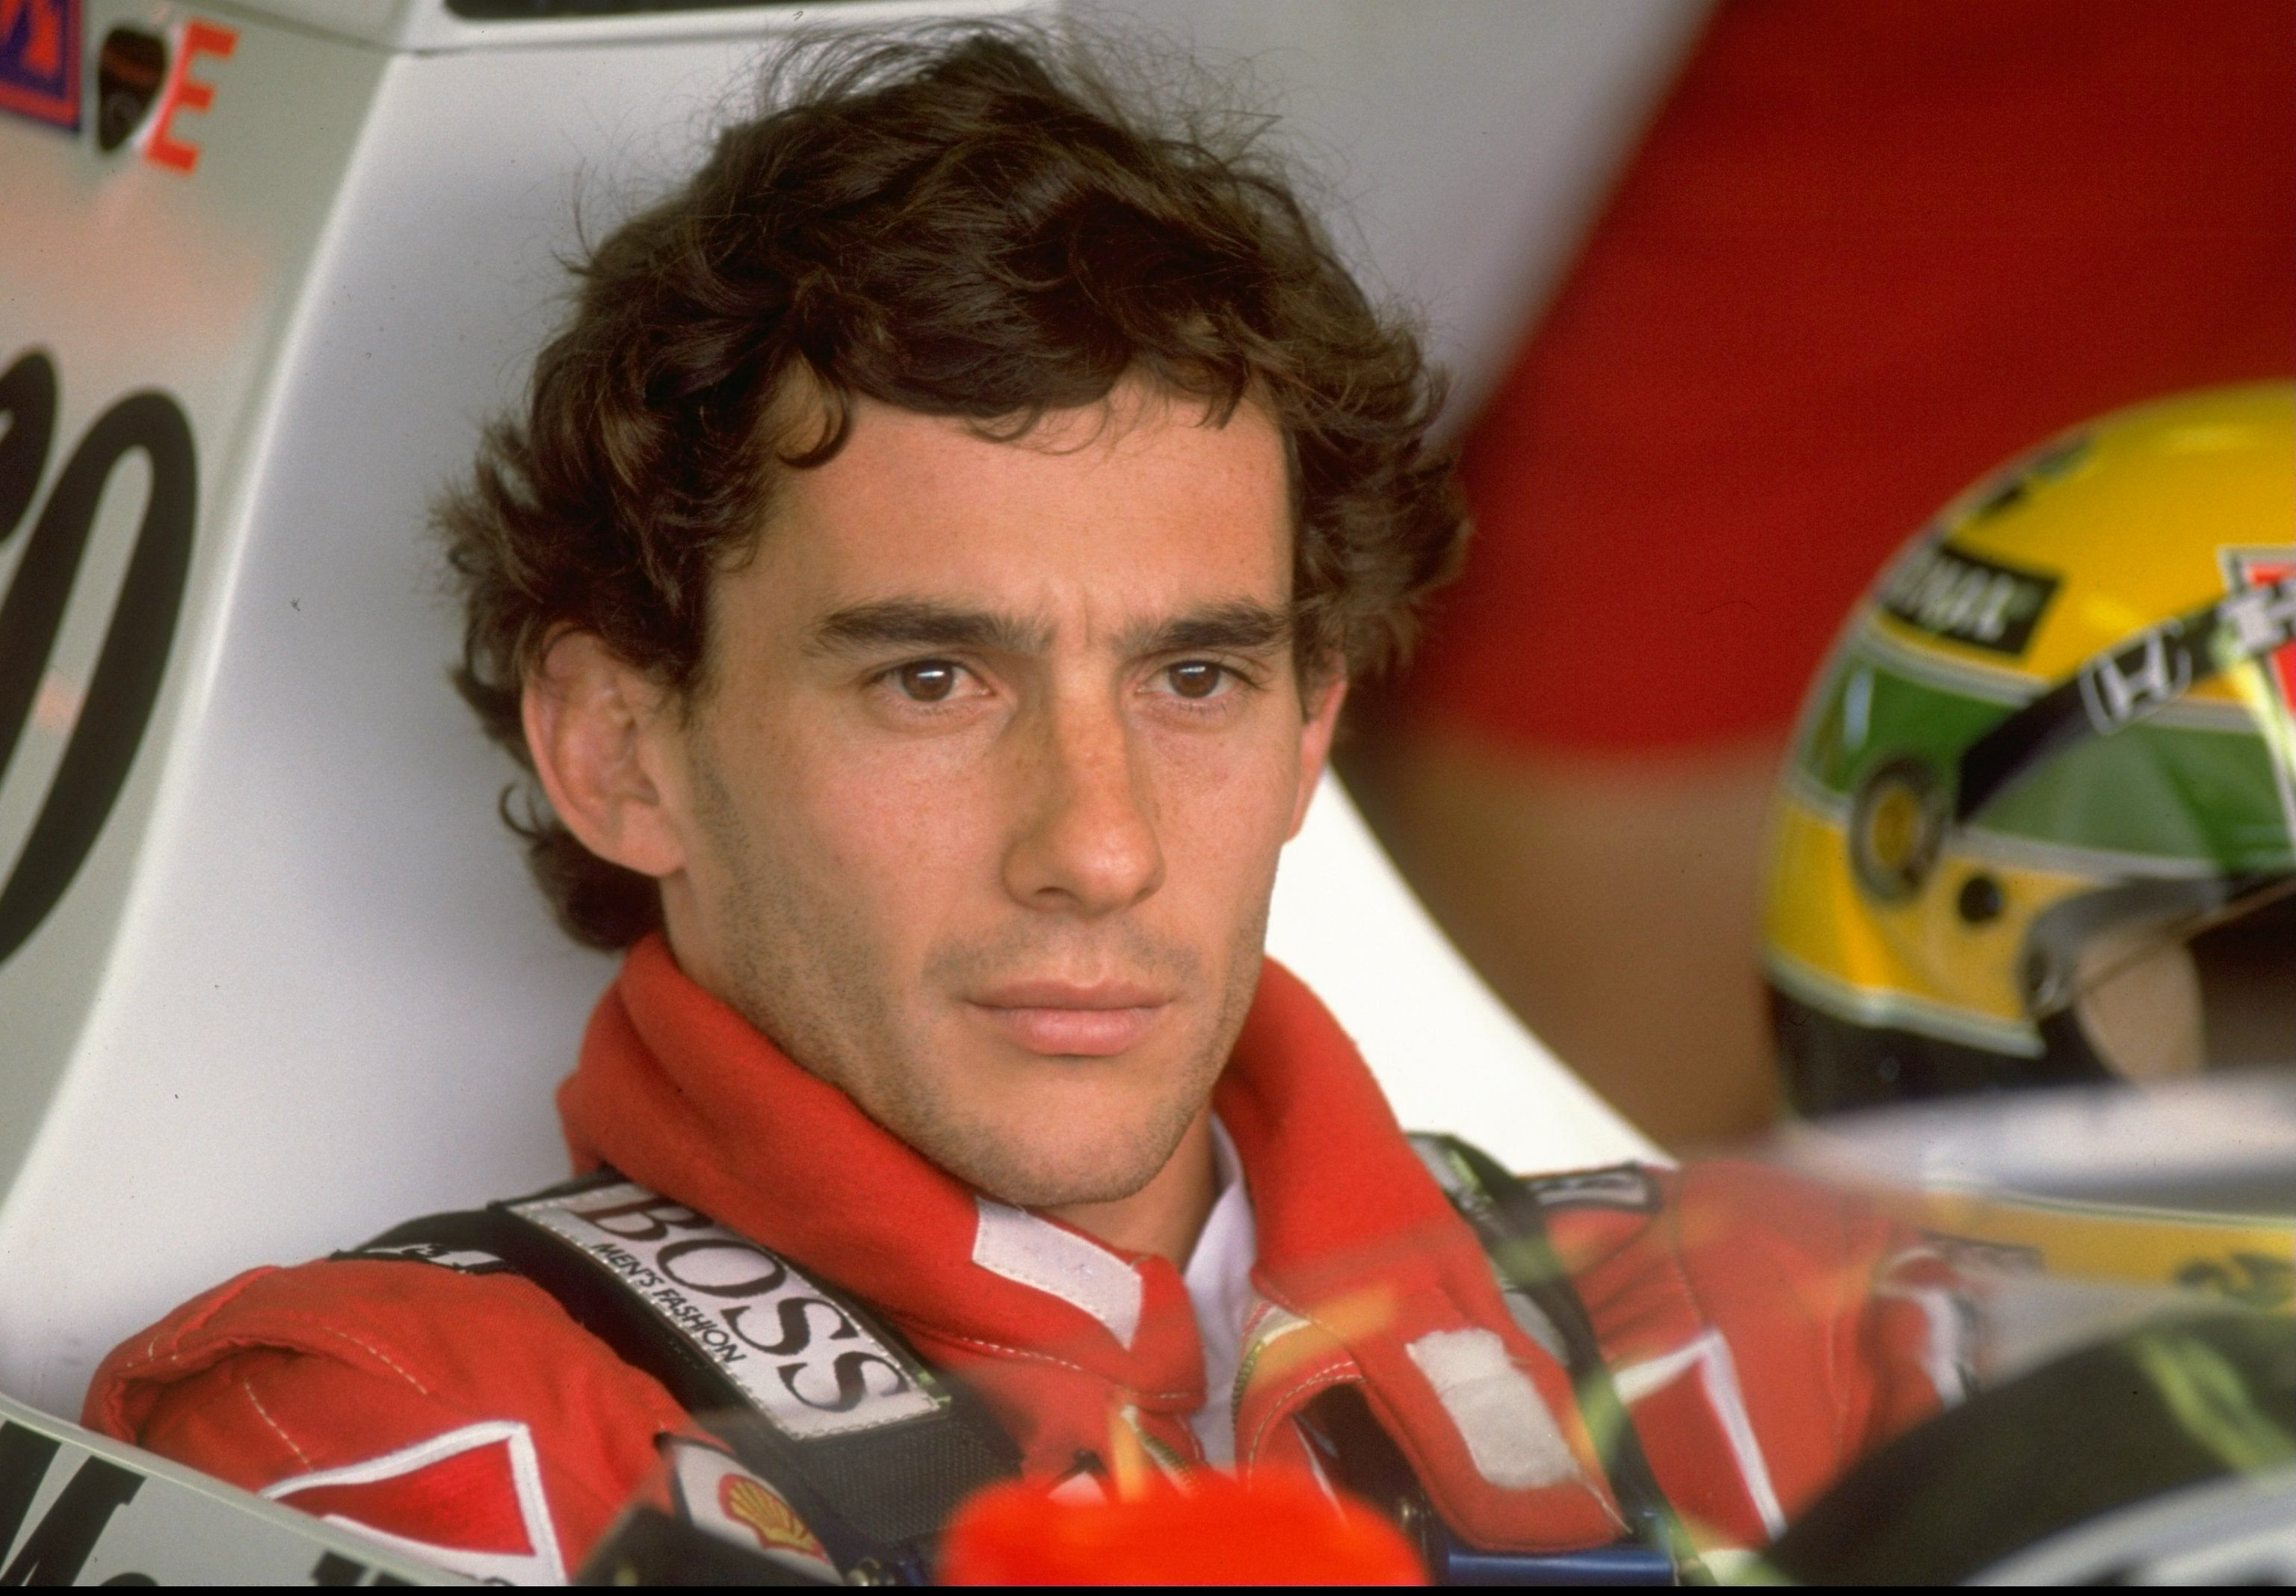 Ayrton Senna's career – in pictures